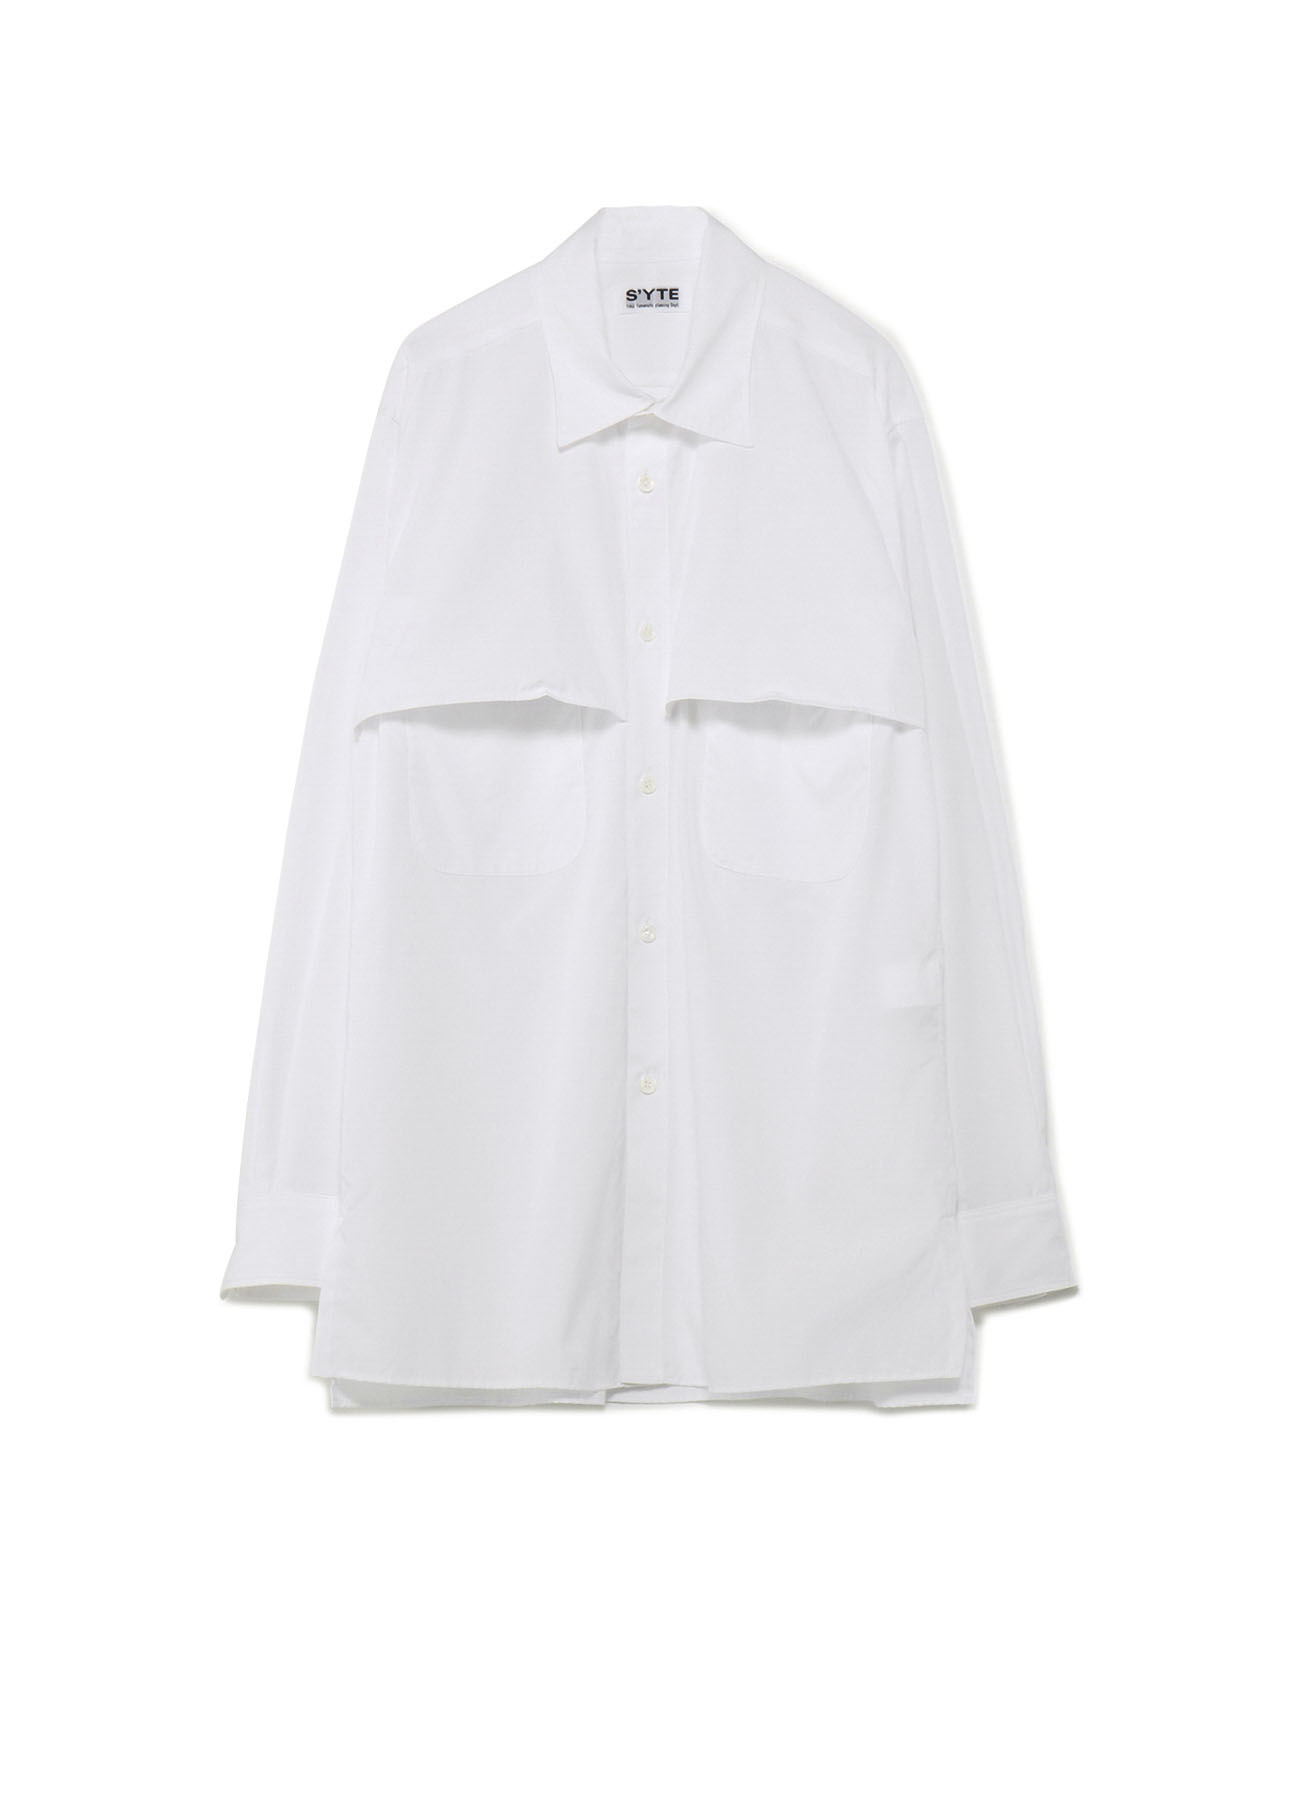 100/2 Broad Storm Shield Double Pocket Shirt